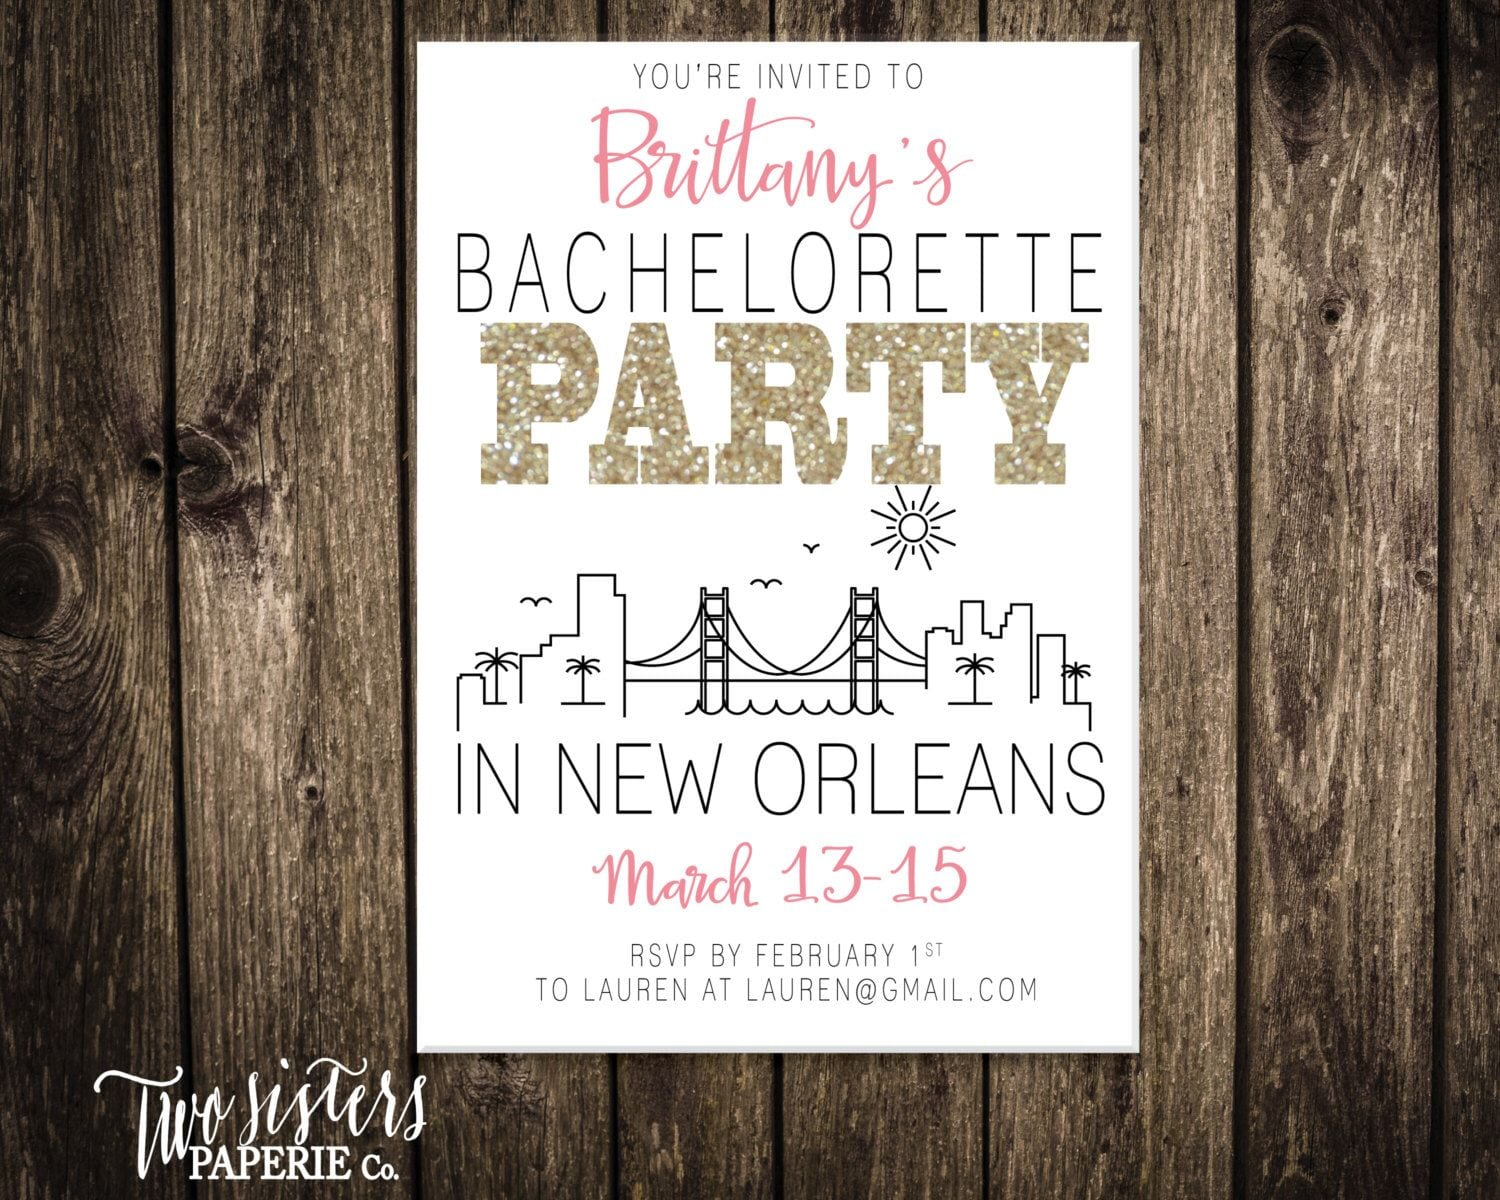 New Orleans Bachelorette Party Invitation And Itinerary